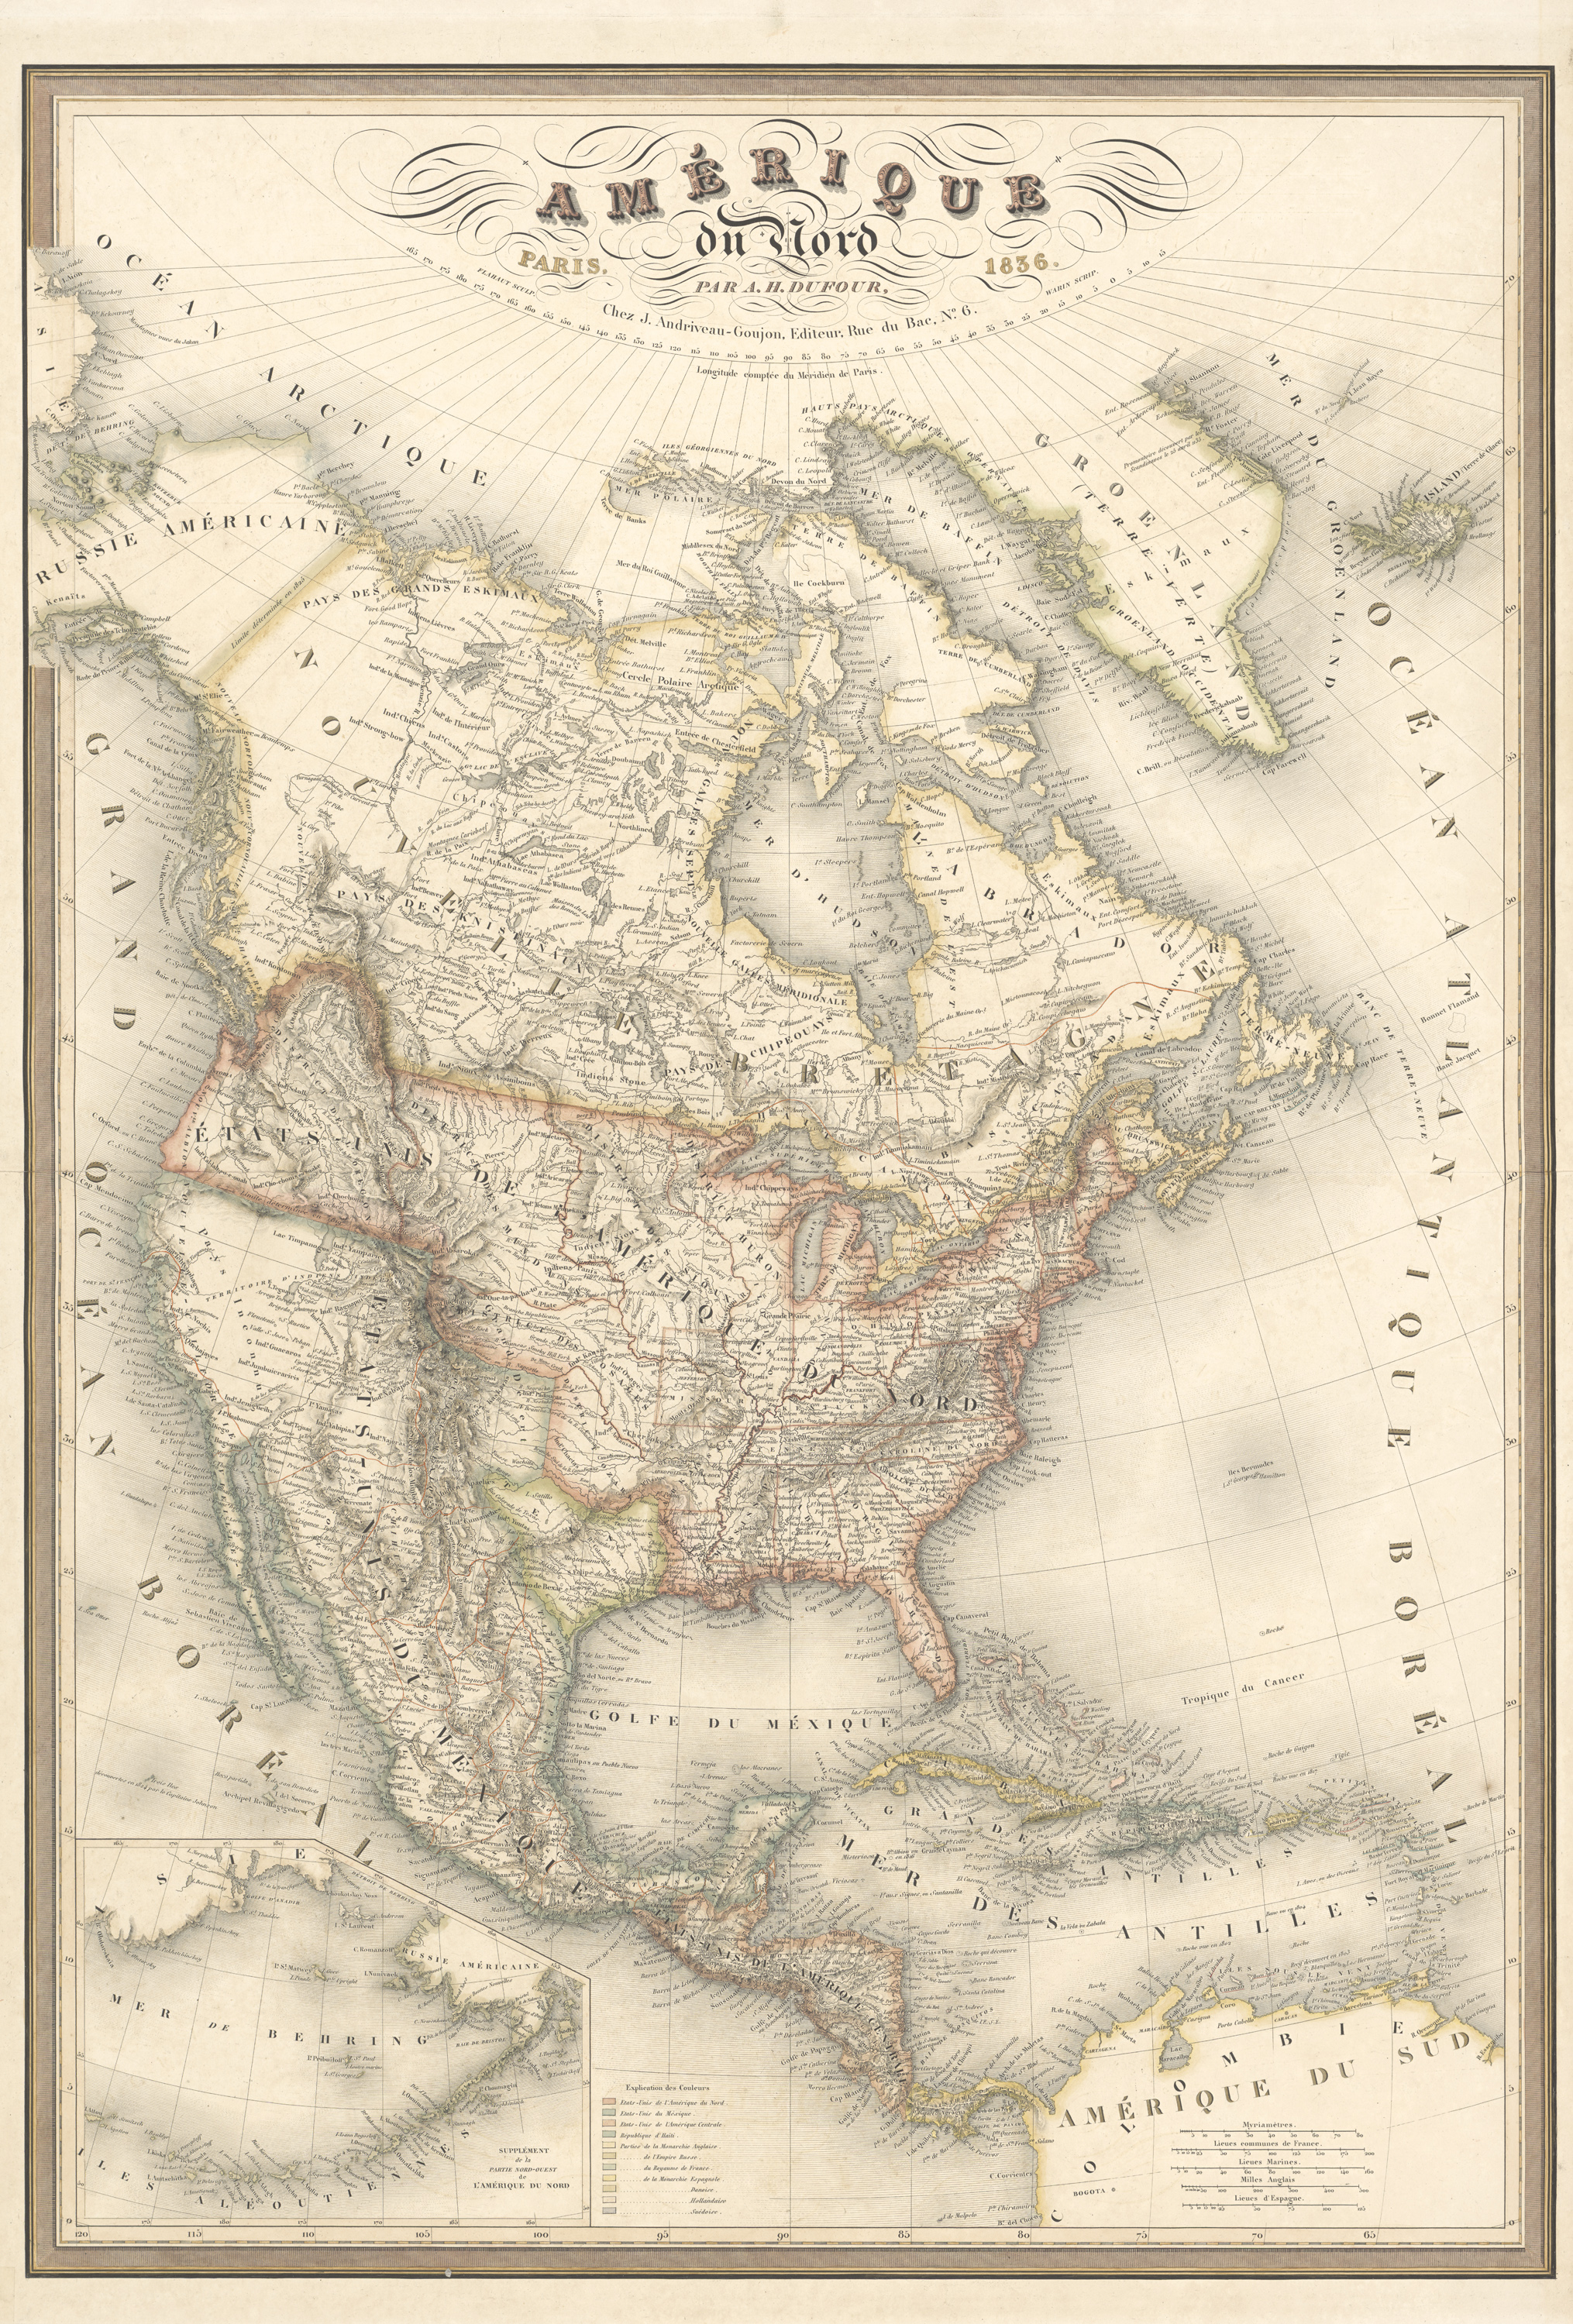 Map of the Republic of Texas and North America circa 1836, Paris